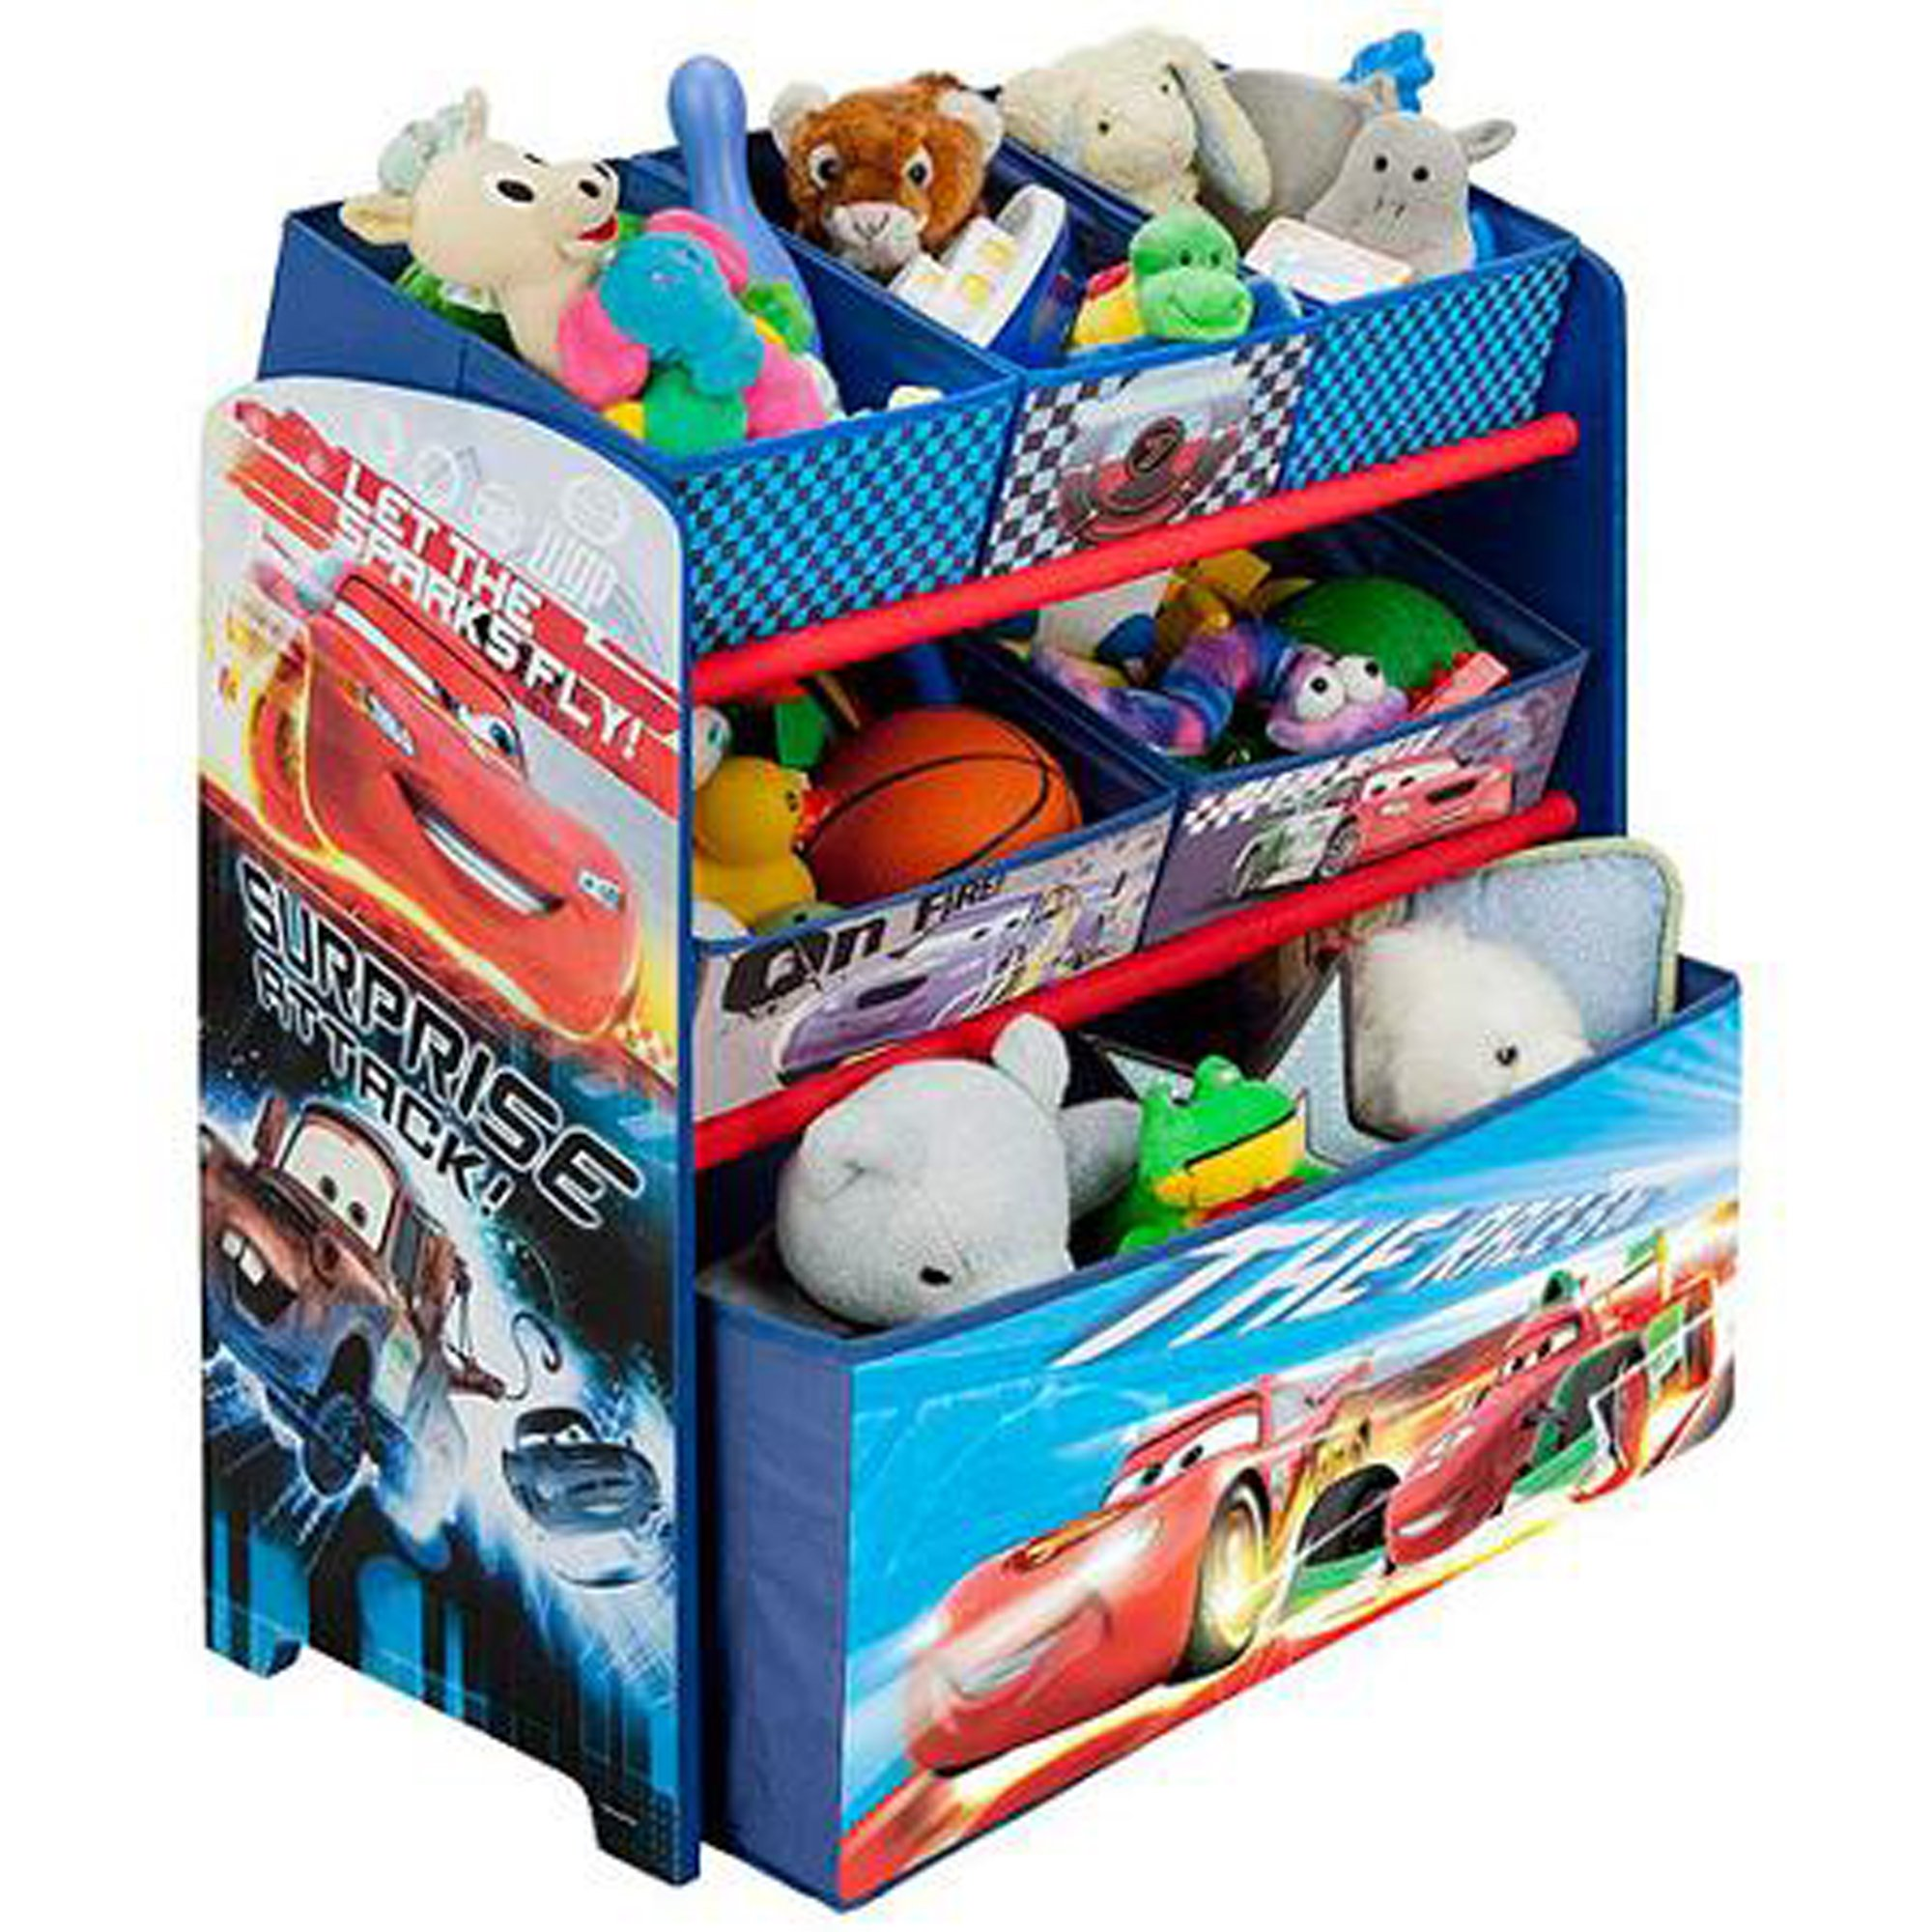 Disney Cars Multi Bin Toy Organizer Blue Well-constructed Wood Design Sturdy Safe Storage Space Plenty of Room Bright Splash of Colors Constructive Functional Toy Bin Organizer